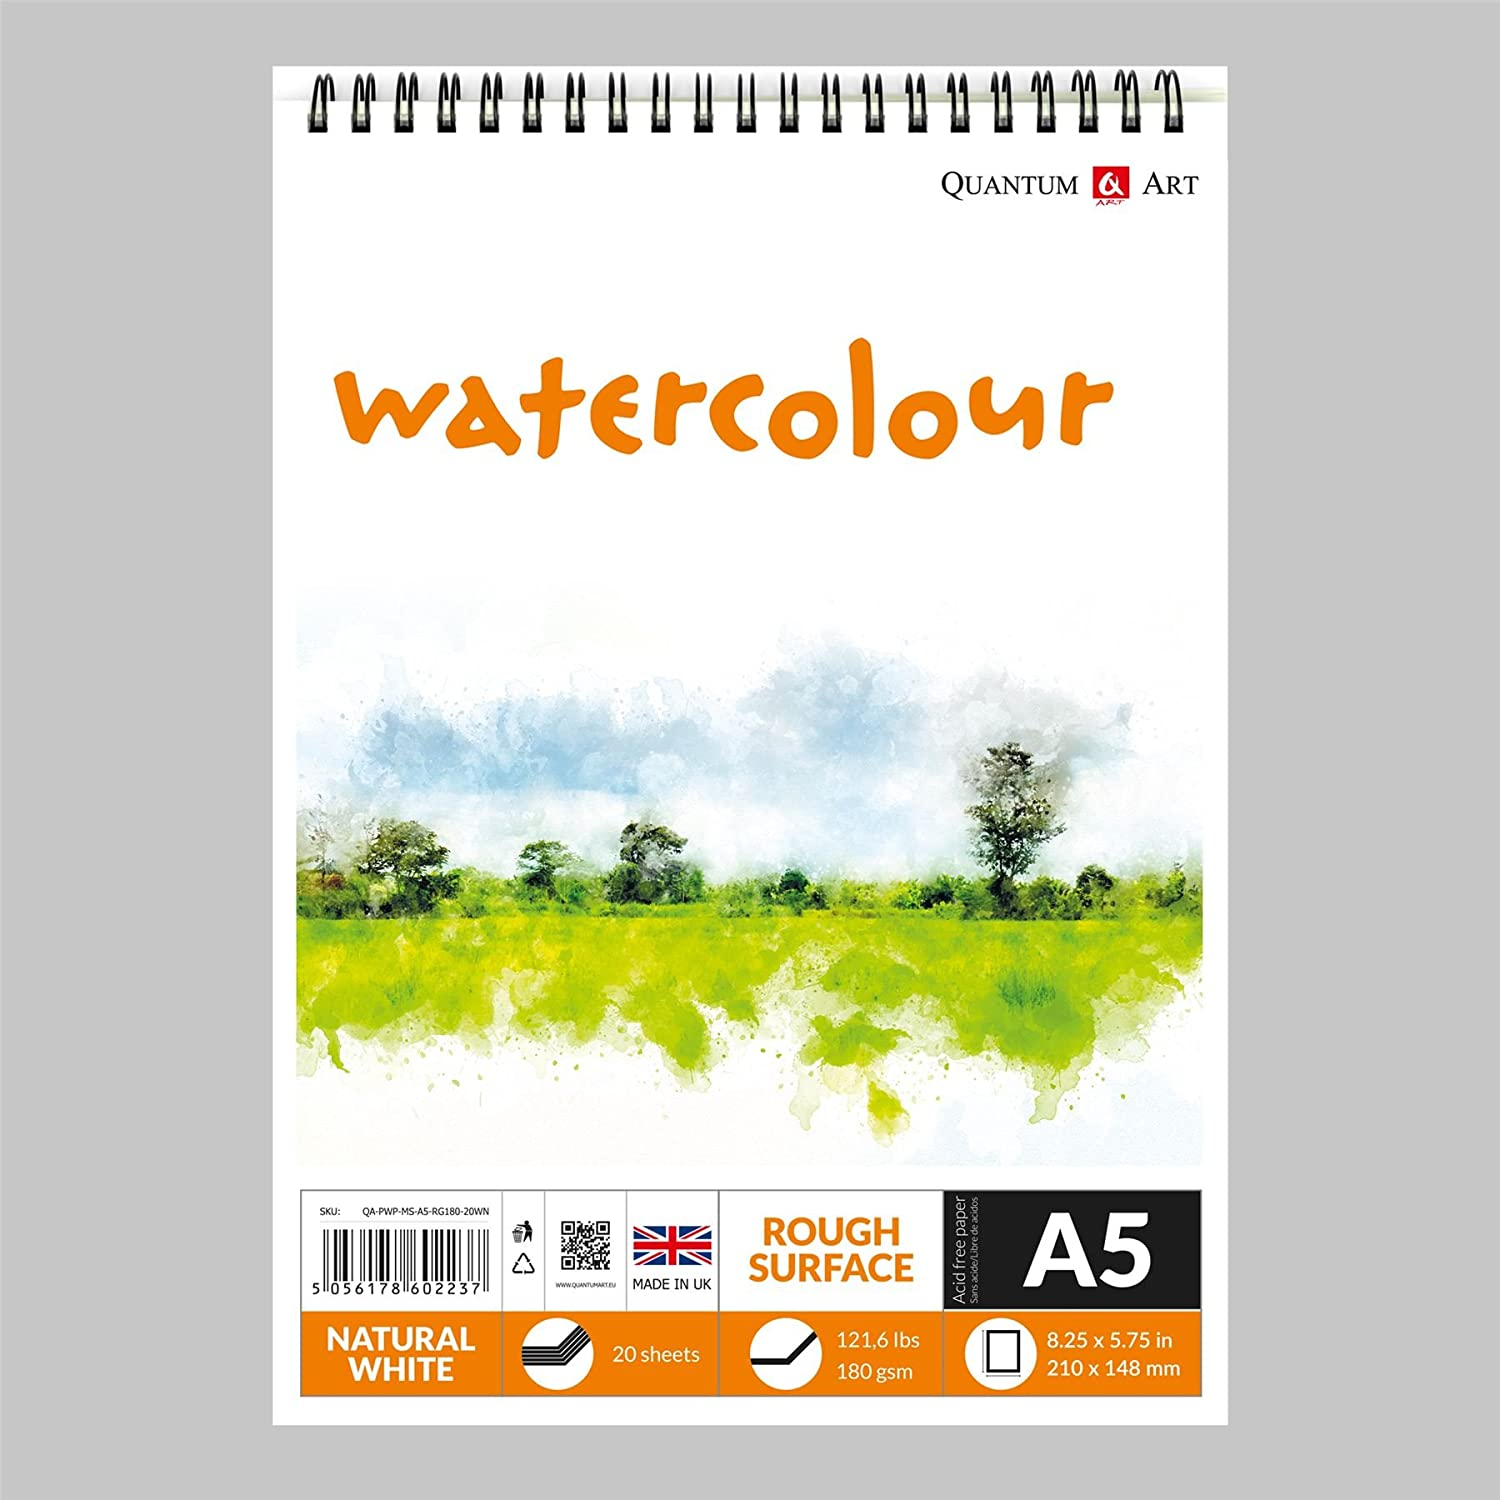 Watercolour Rough Surface Pad Drawing Artist Paper on Spiral Book 180gsm A3-420x297 mm